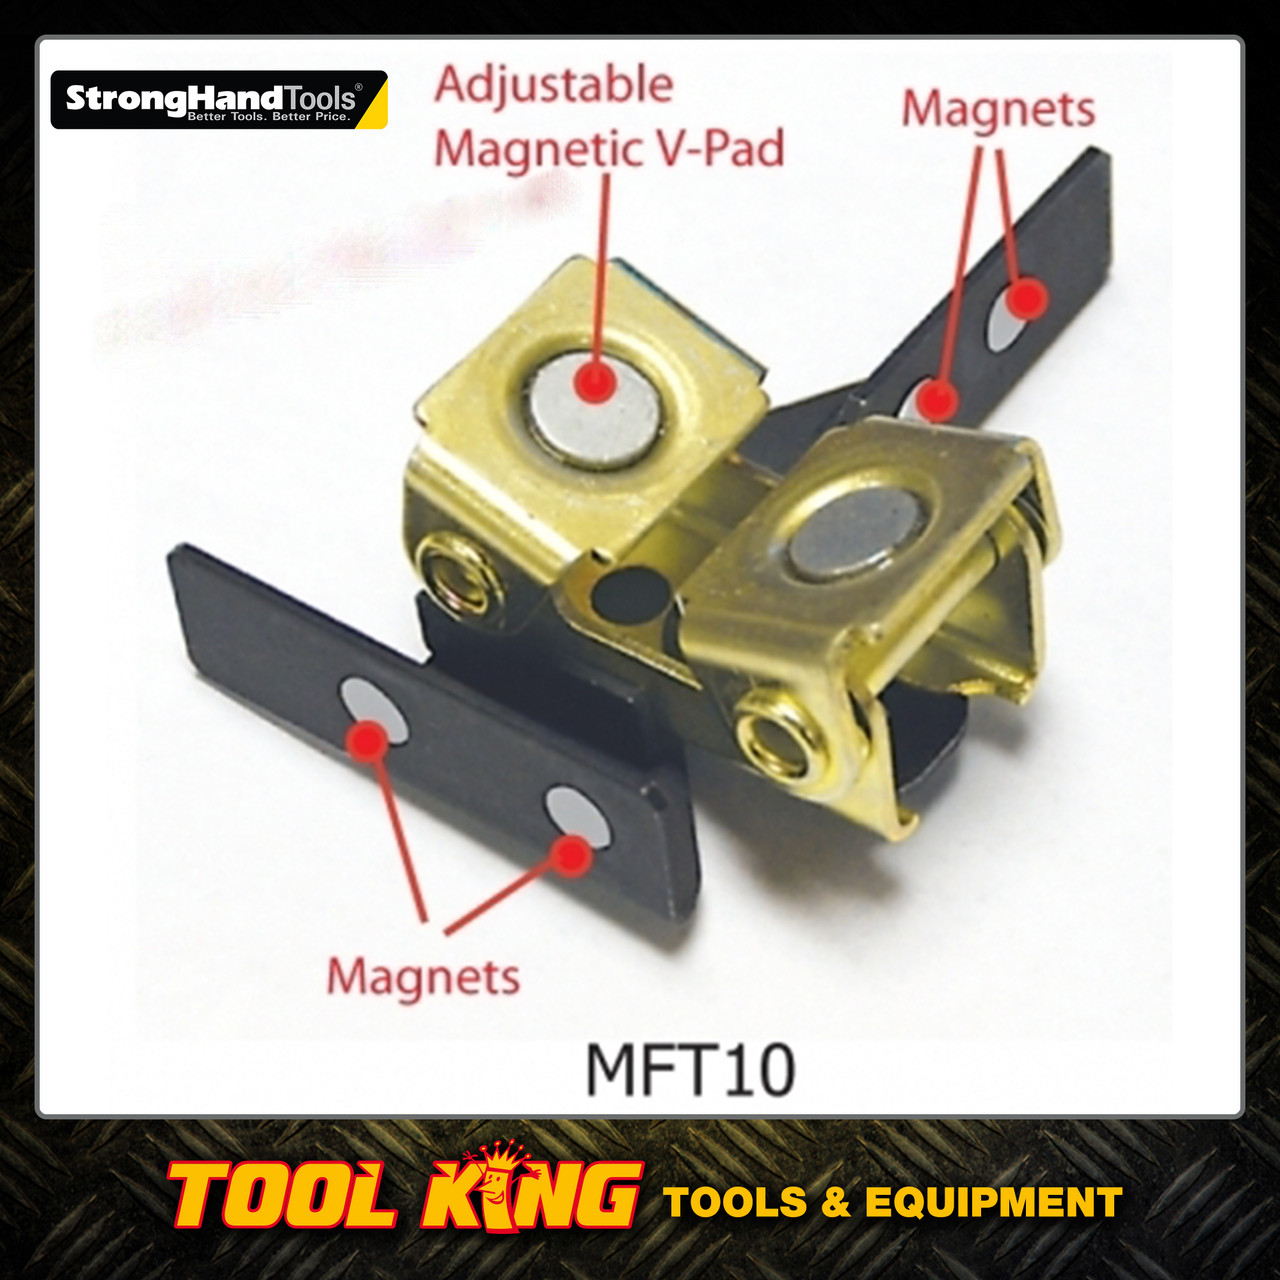 MAG TAB magnetic welding clamp